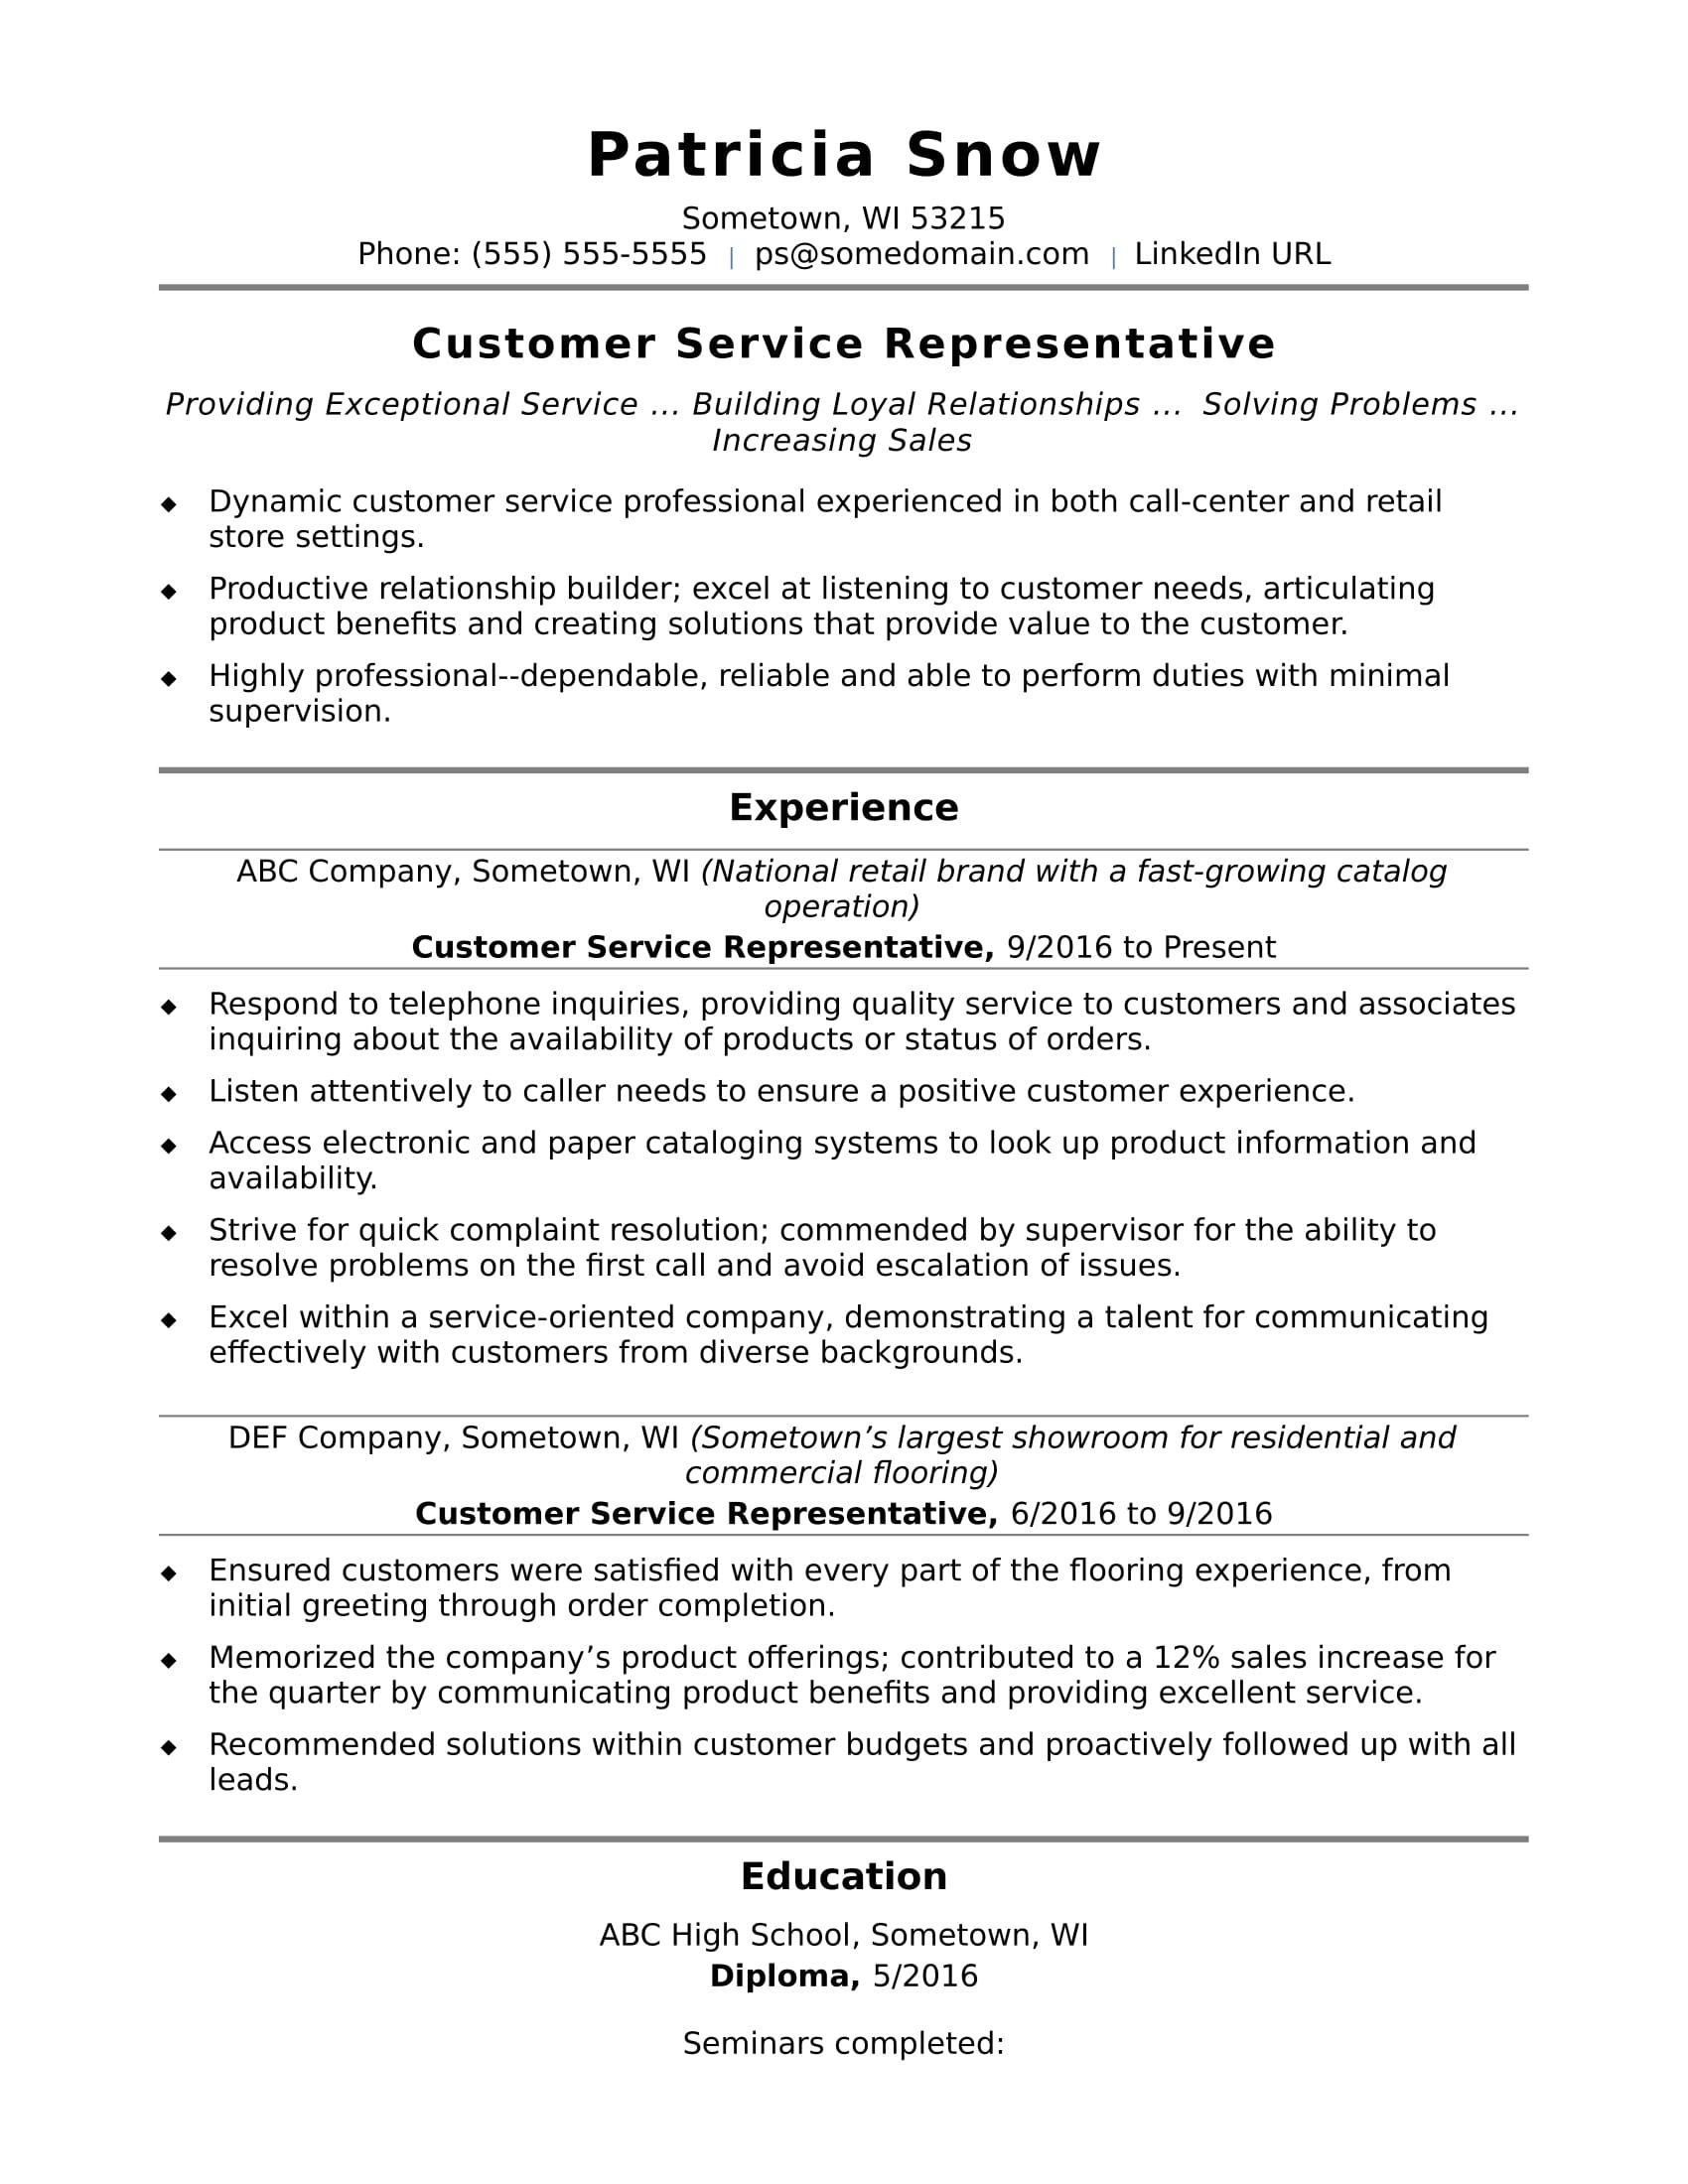 this sample resume for an entry level customer service representative shows you can Resume Customer Service Representative Resume Examples